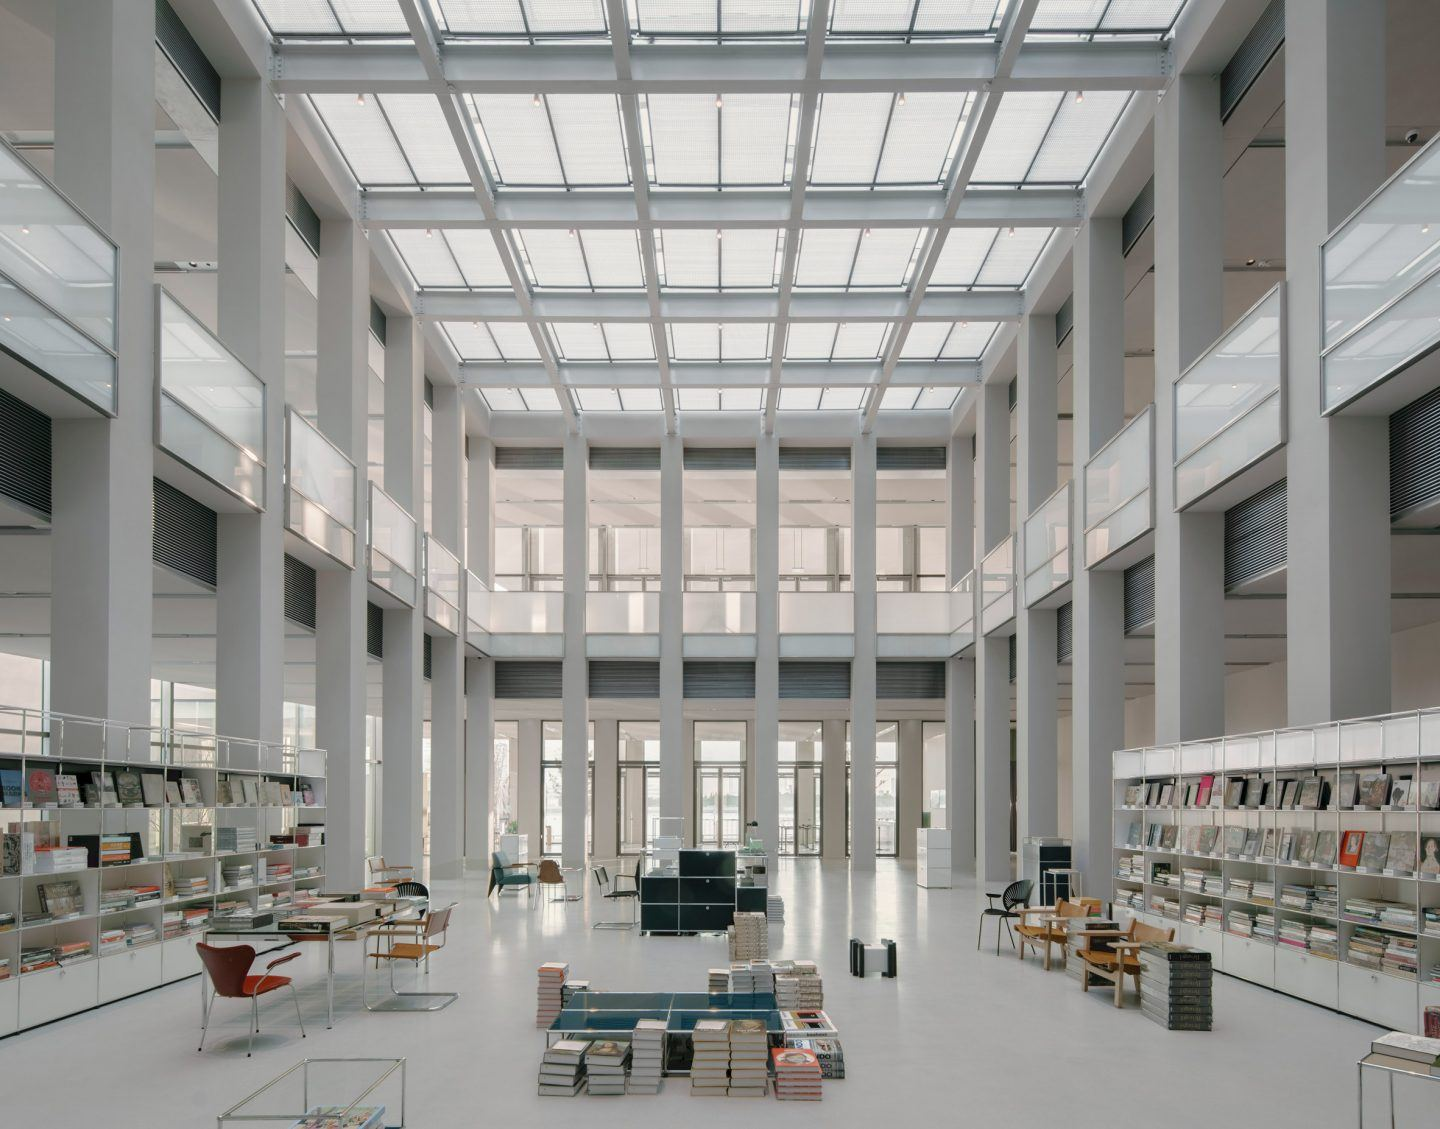 IGNANT-Architecture-David-Chipperfield-West-Bund-Museum-05